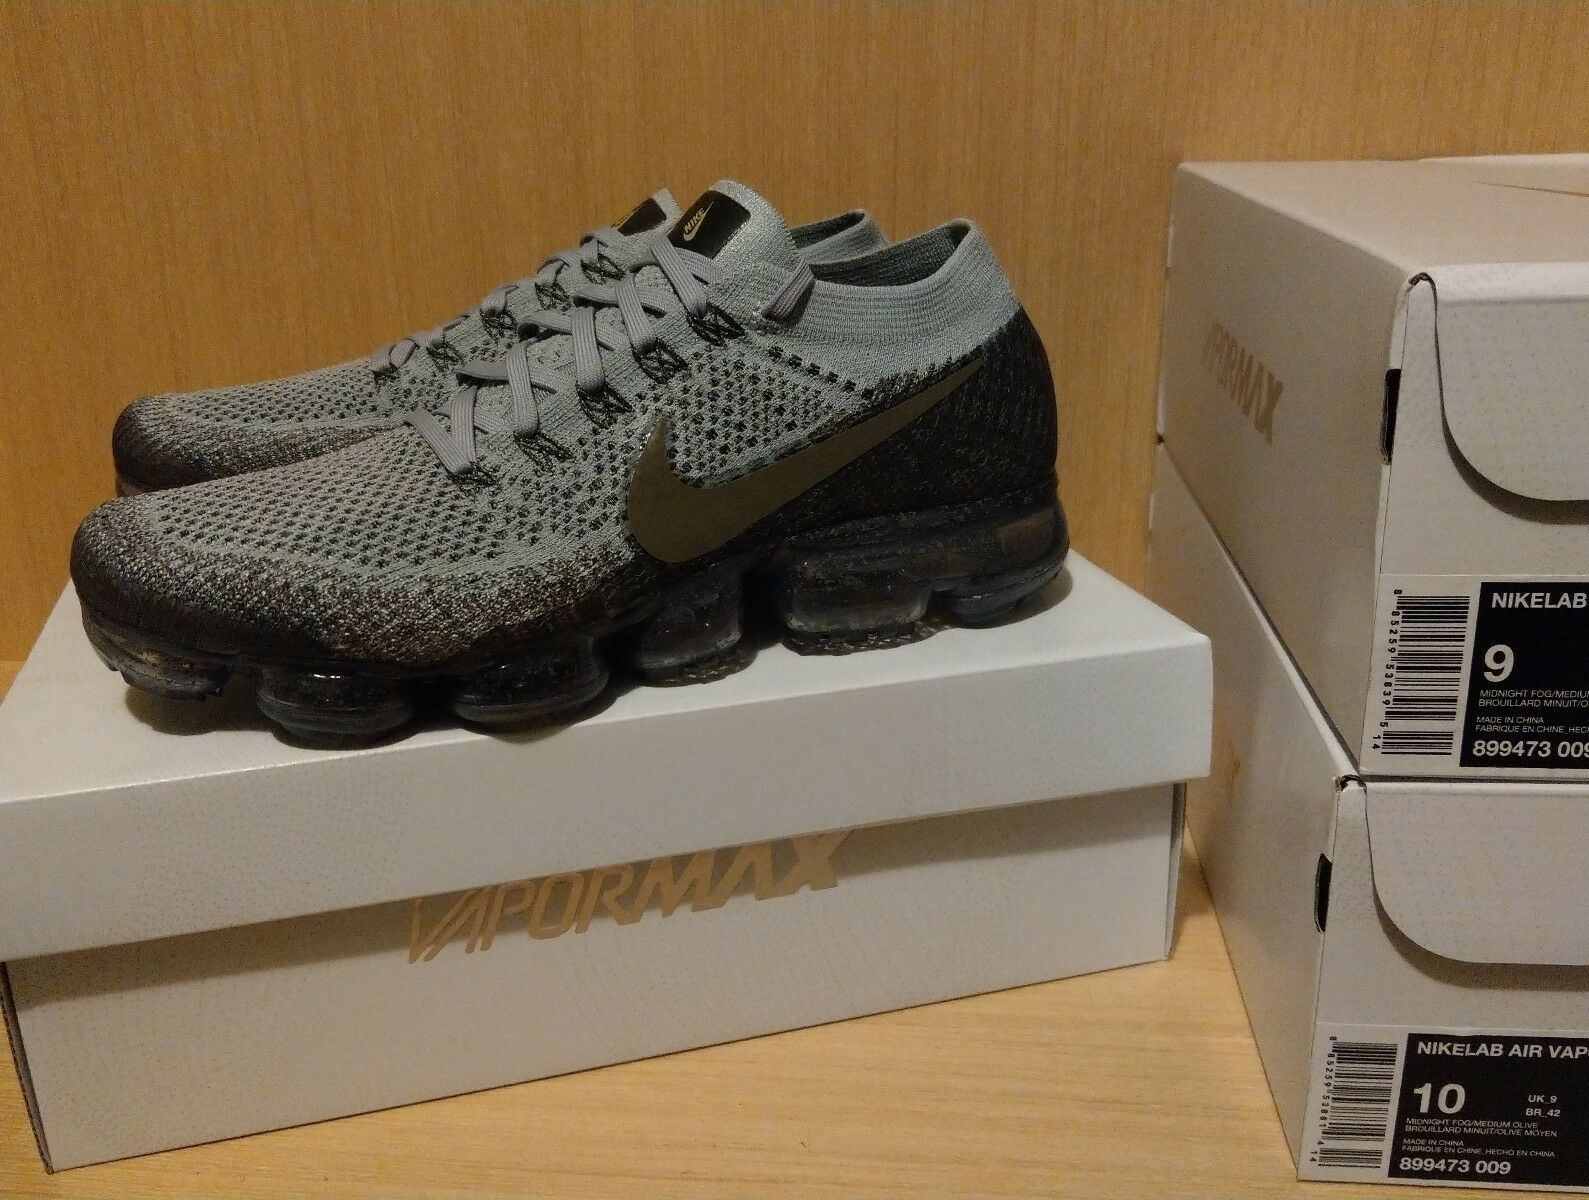 Nike Nikelab Air Vapormax Flyknit 899473-009 US9 ( Vapor Max Racer Trainer React The most popular shoes for men and women